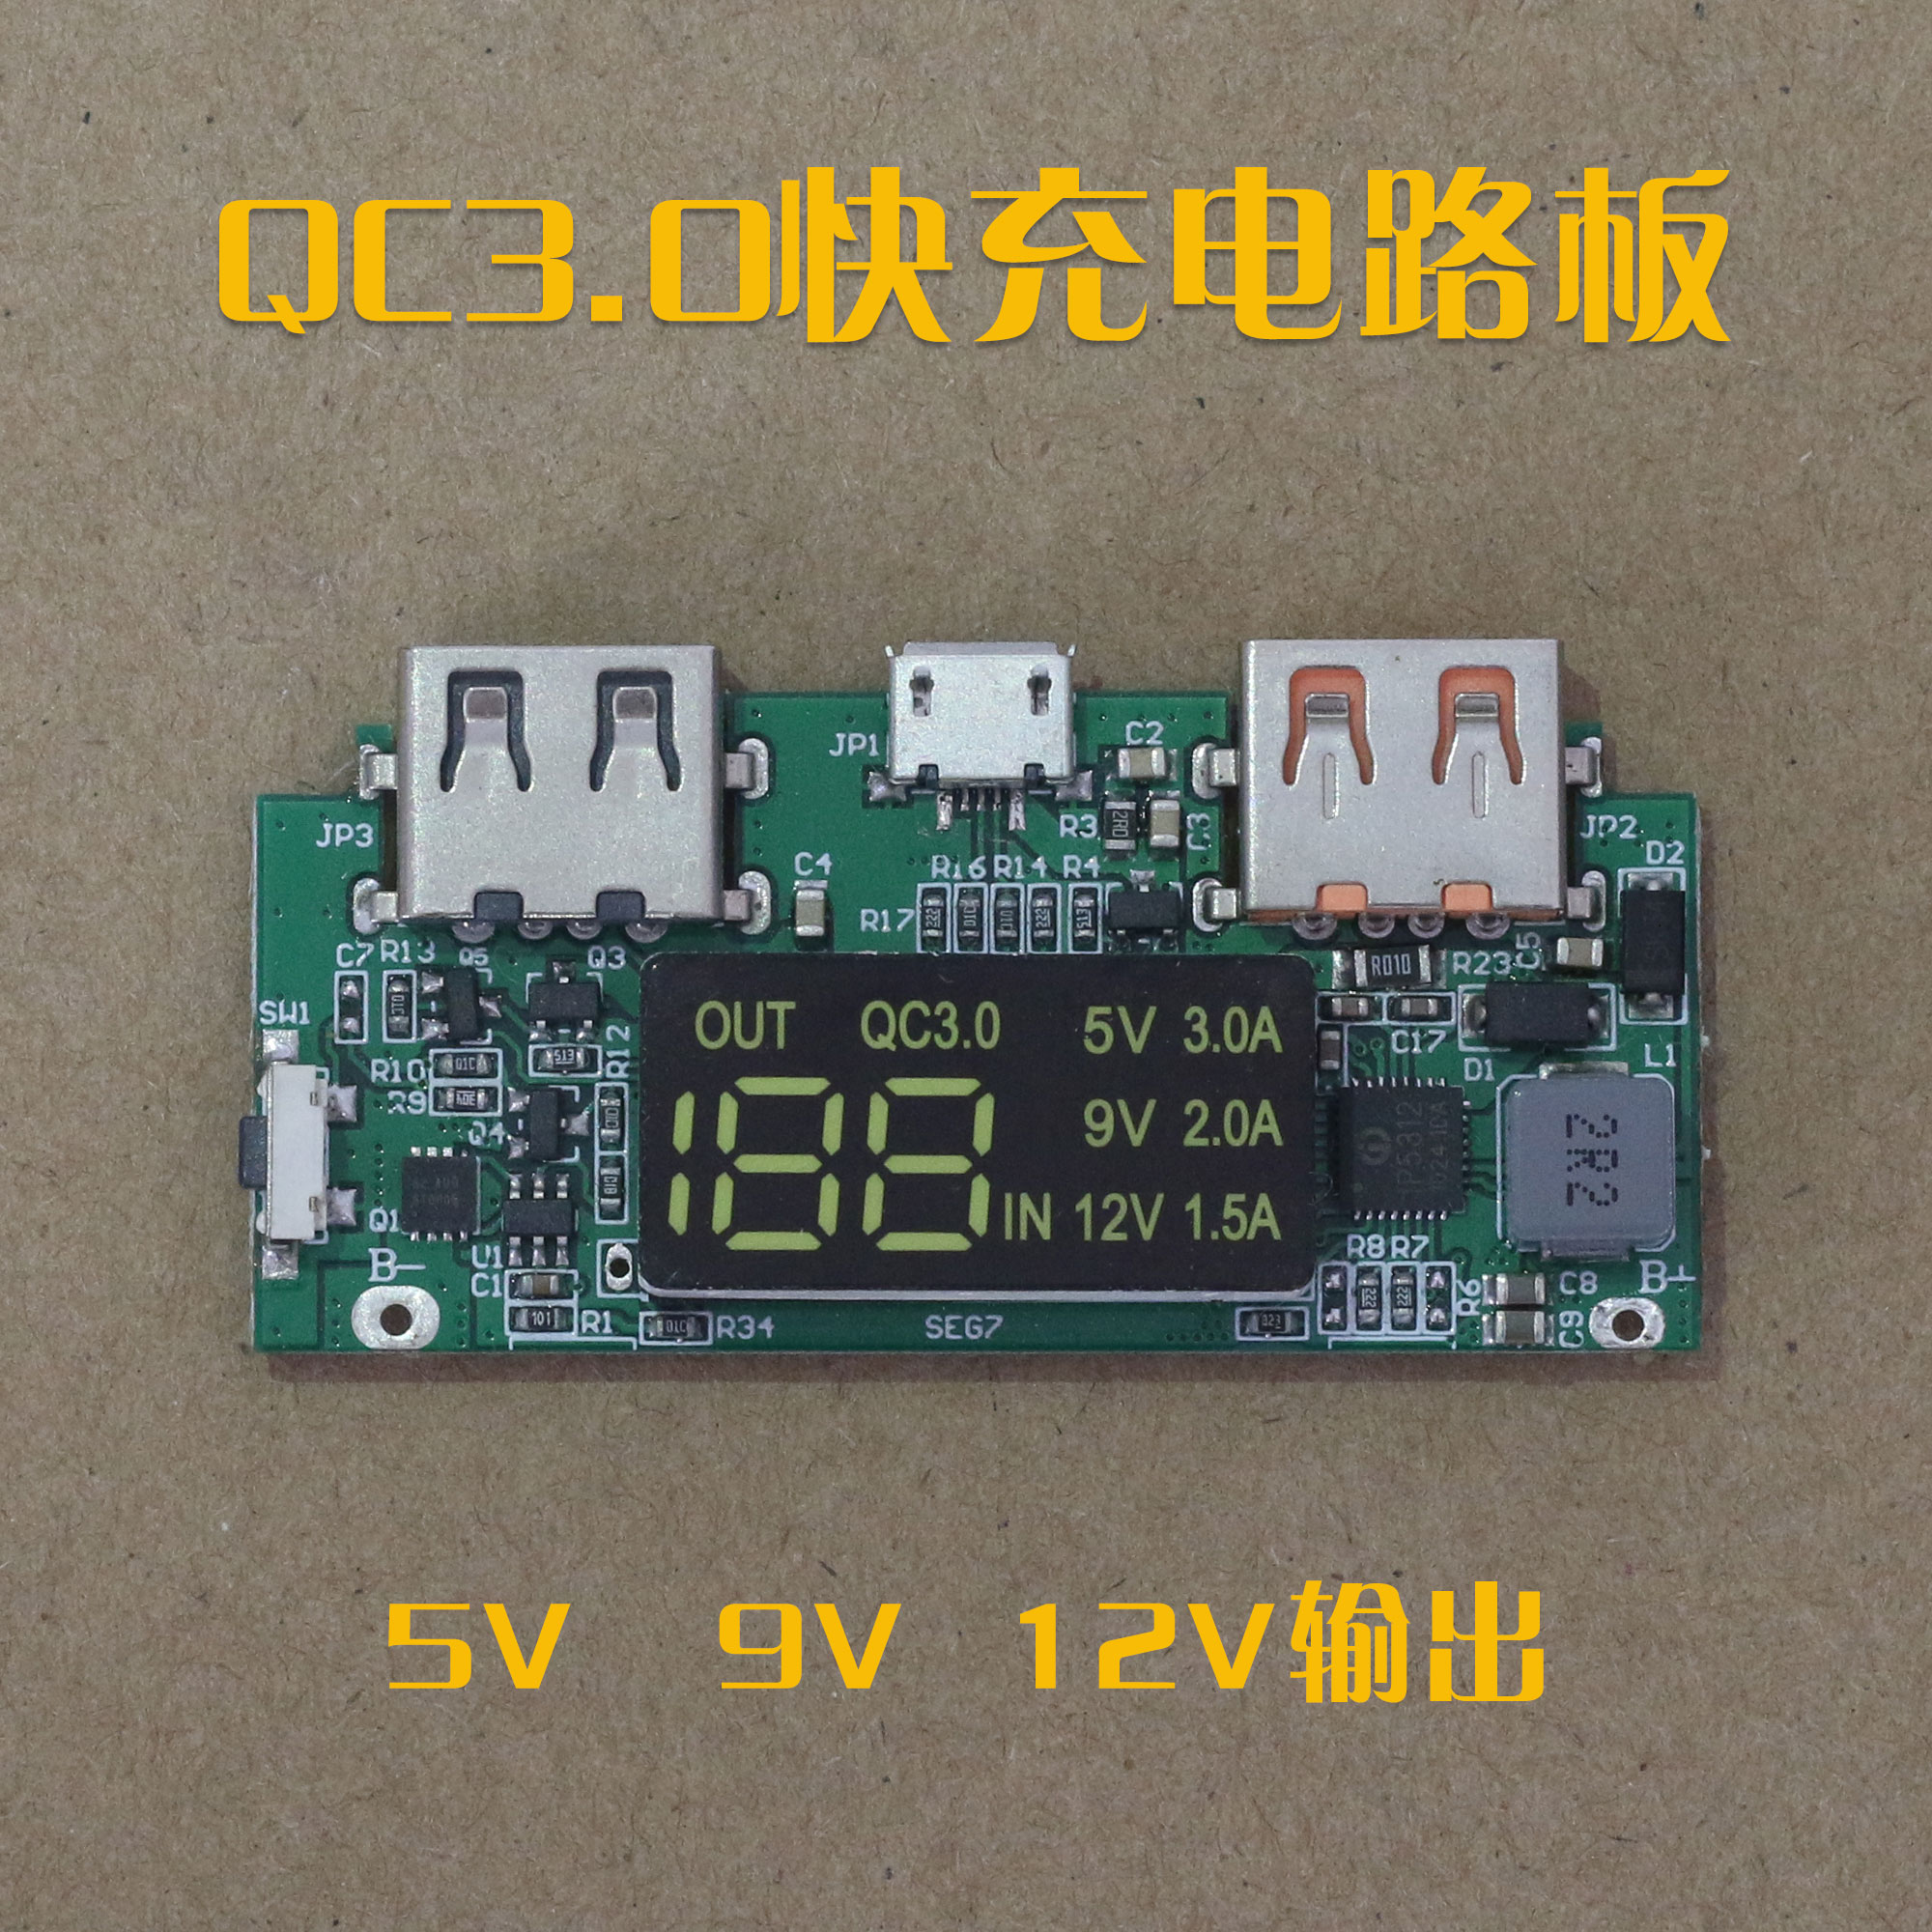 18650 Battery 37v Turn 5v 9v 12v Boost Module High Pass Qc30 Bi To Tester Schematic Directional Fast Charging And Boosting Board In Air Conditioner Parts From Home Appliances